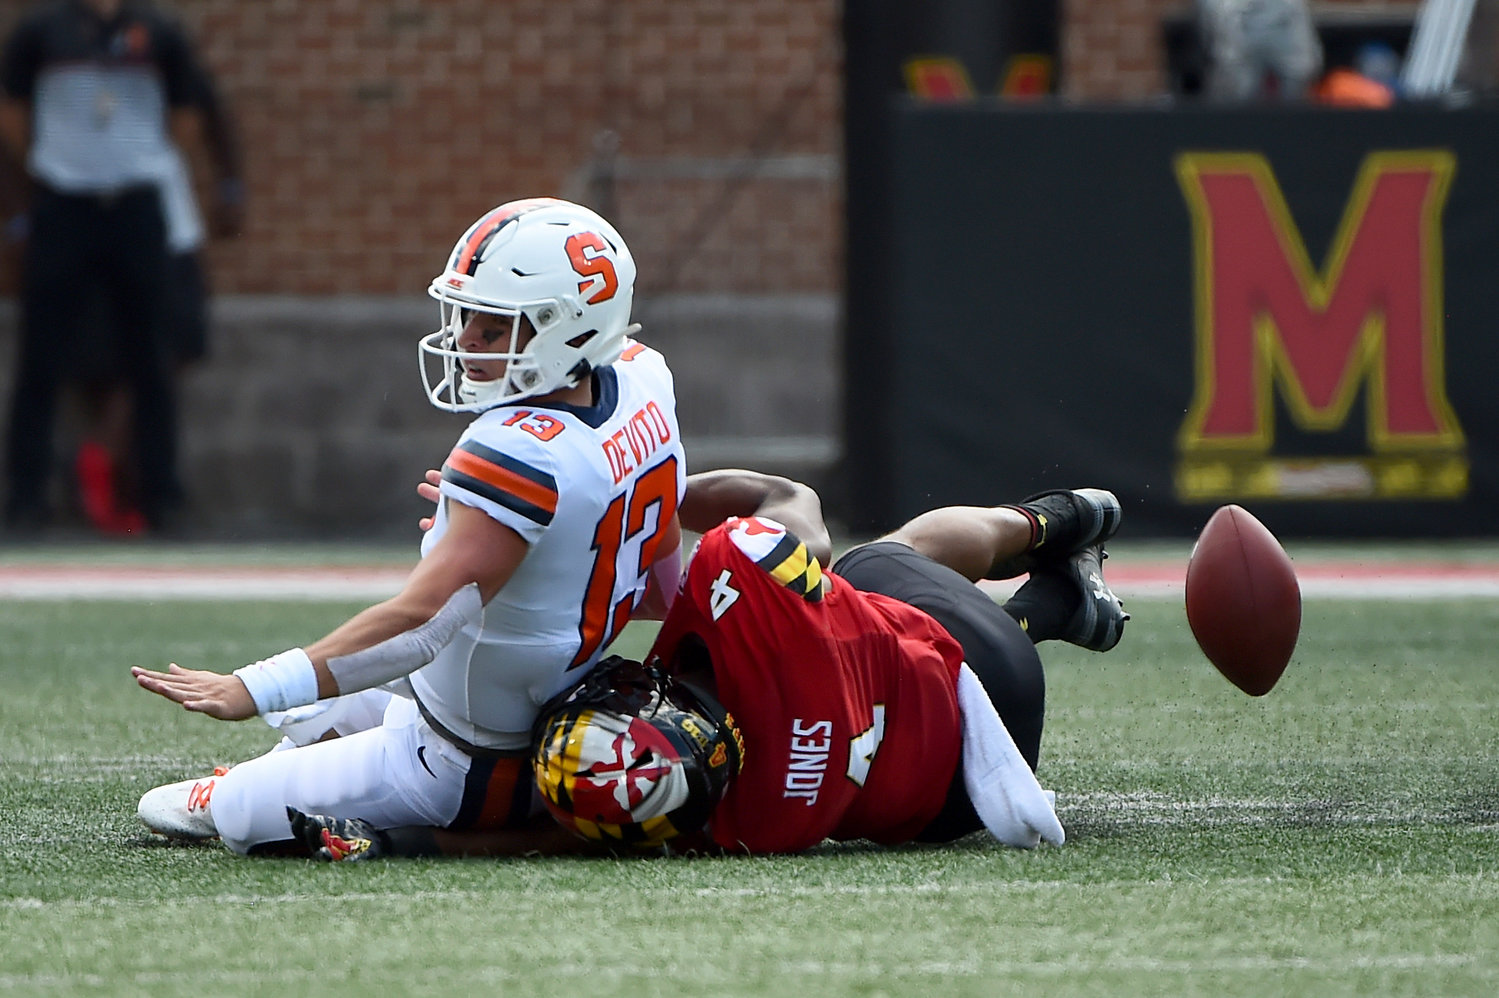 LOOSE BALL — Terrapins linebacker Keandre Jones (4) forces Orange quarterback Tommy DeVito (13) to fumble during the first half of a college football game on Saturday in College Park, Md. The Orange were routed 63-20.